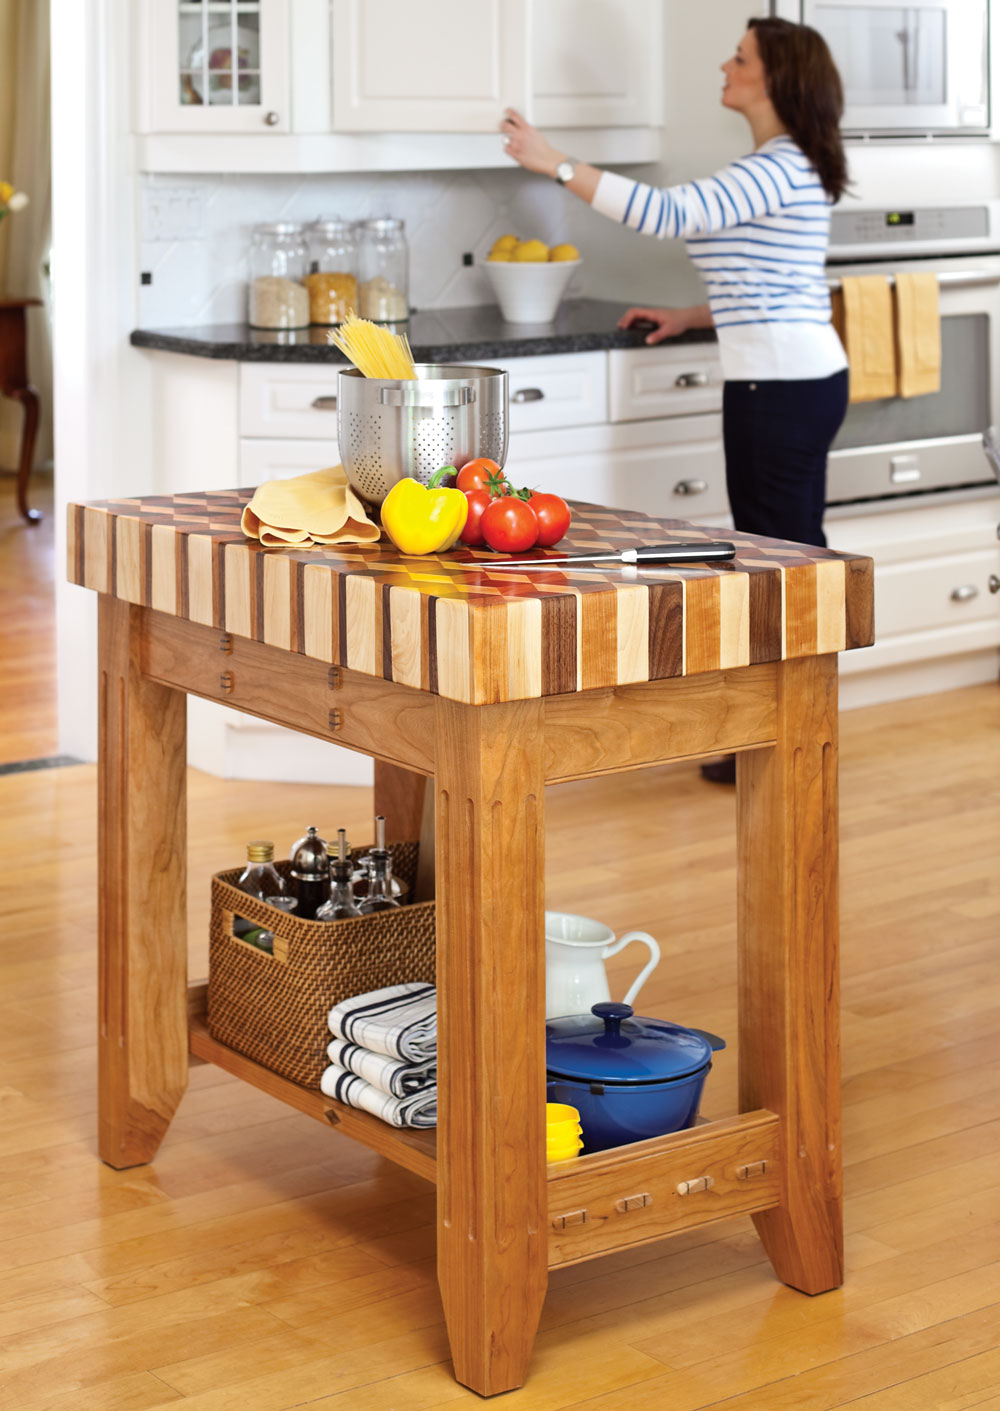 What Is A Kitchen Island With Pictures: How To Make Kitchen Island Plans?